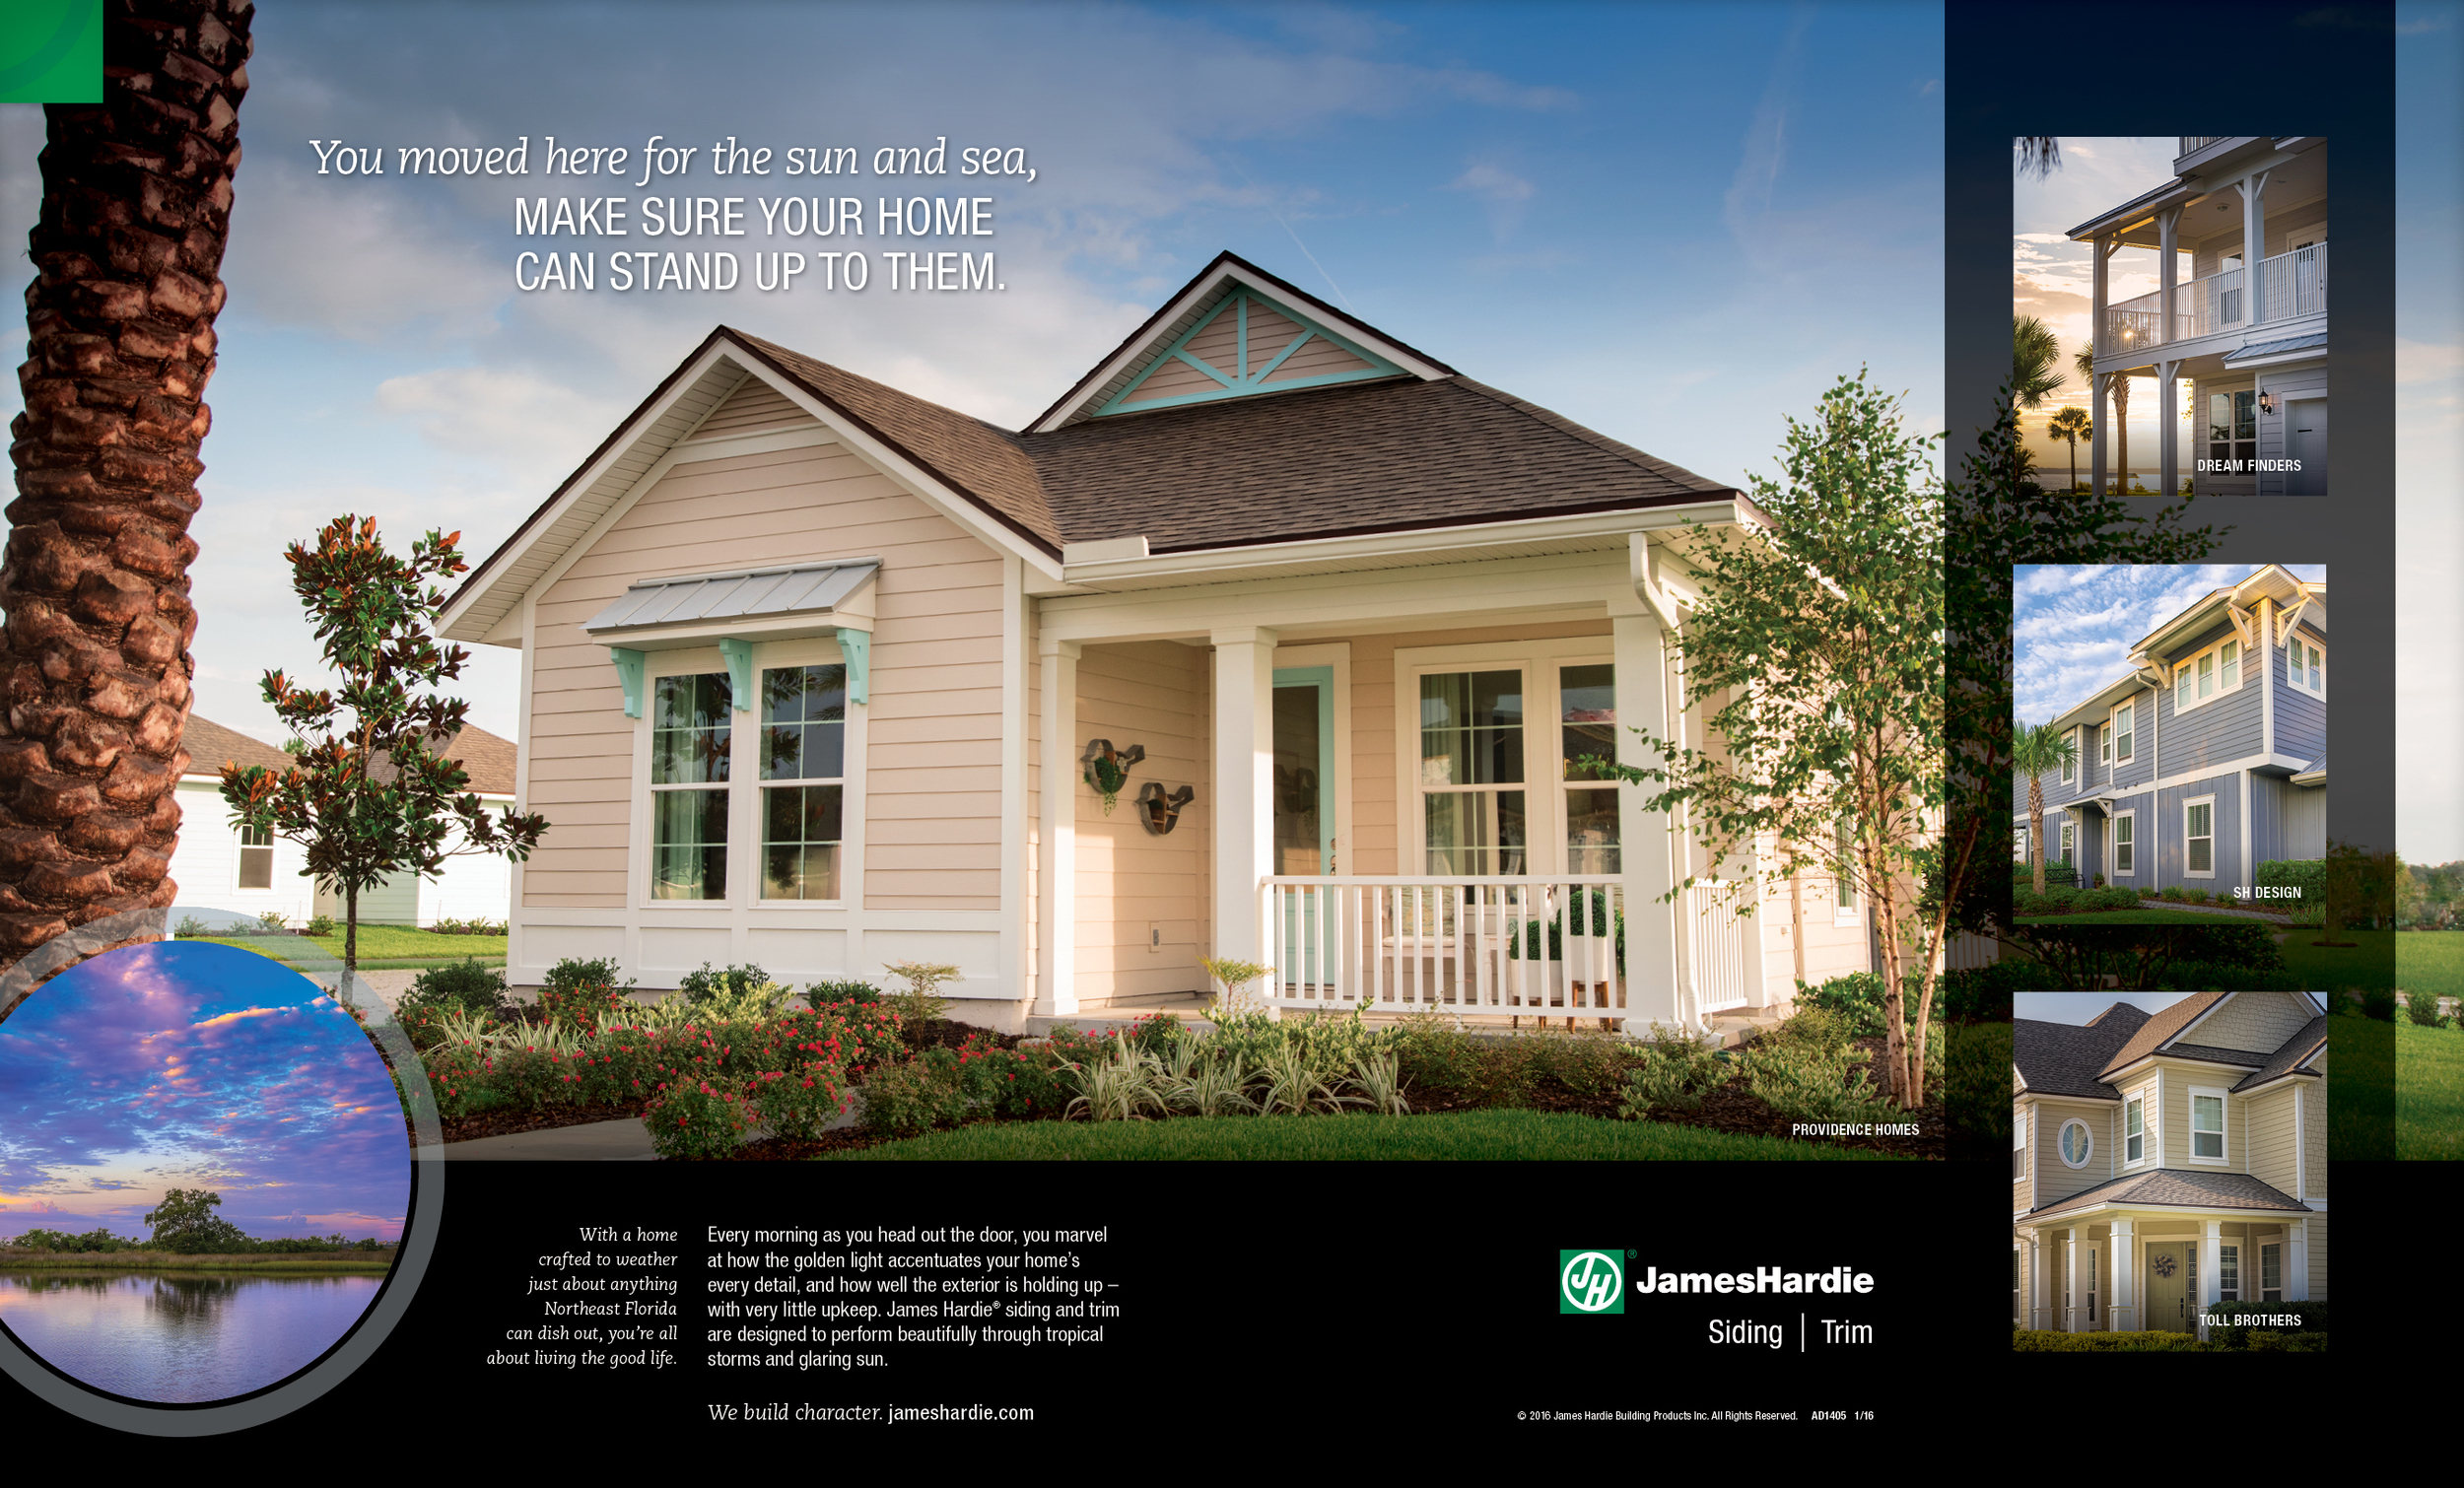 Spread ad for James Hardie